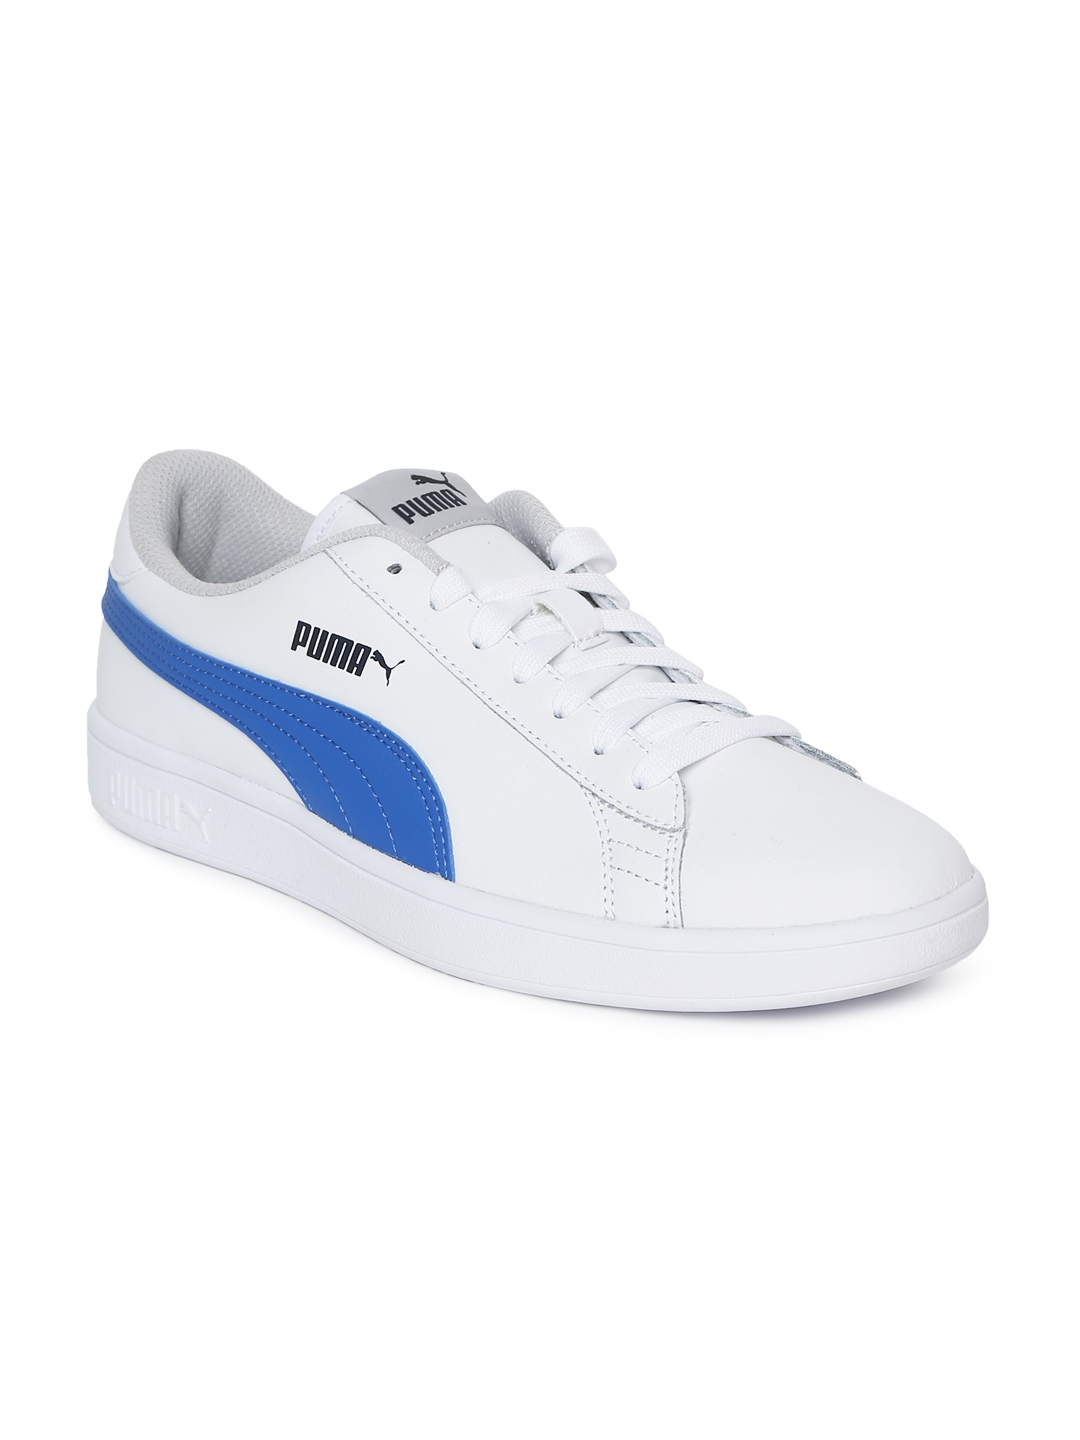 Buy Puma Kids White   Blue Colourblocked Smash V2 L Junior Sneakers ... 0a4fe65e8